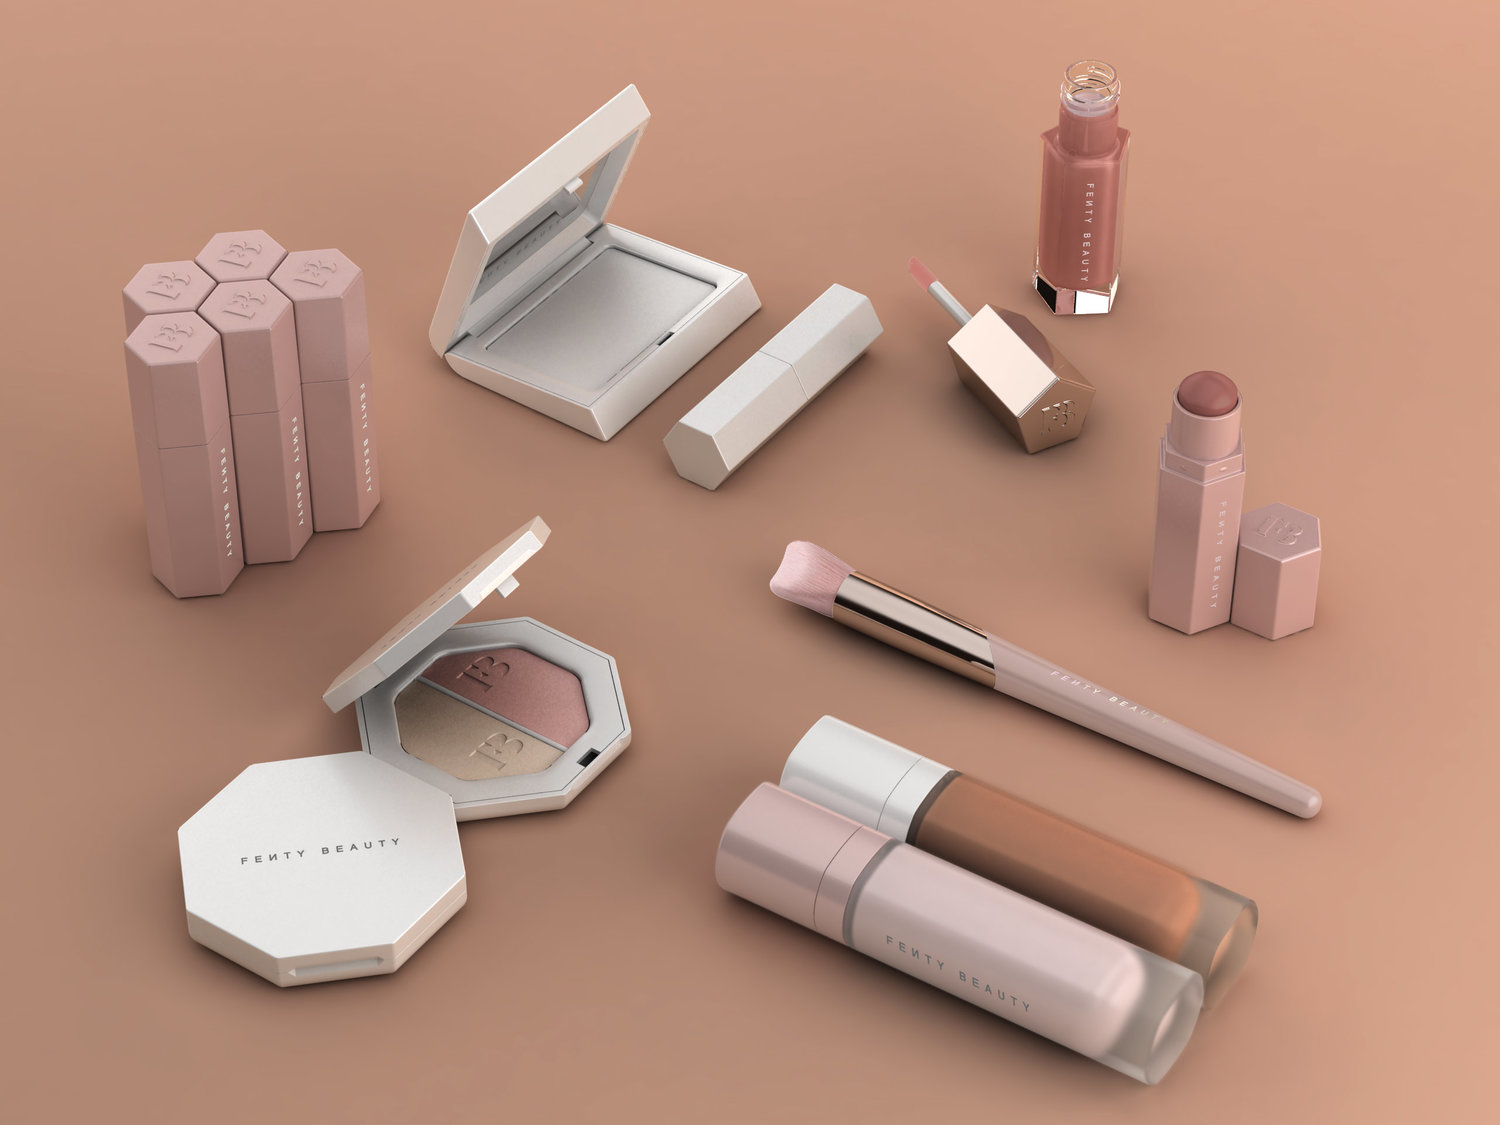 Established nyc Rihanna Fenty beauty Collection | Makeup Packging